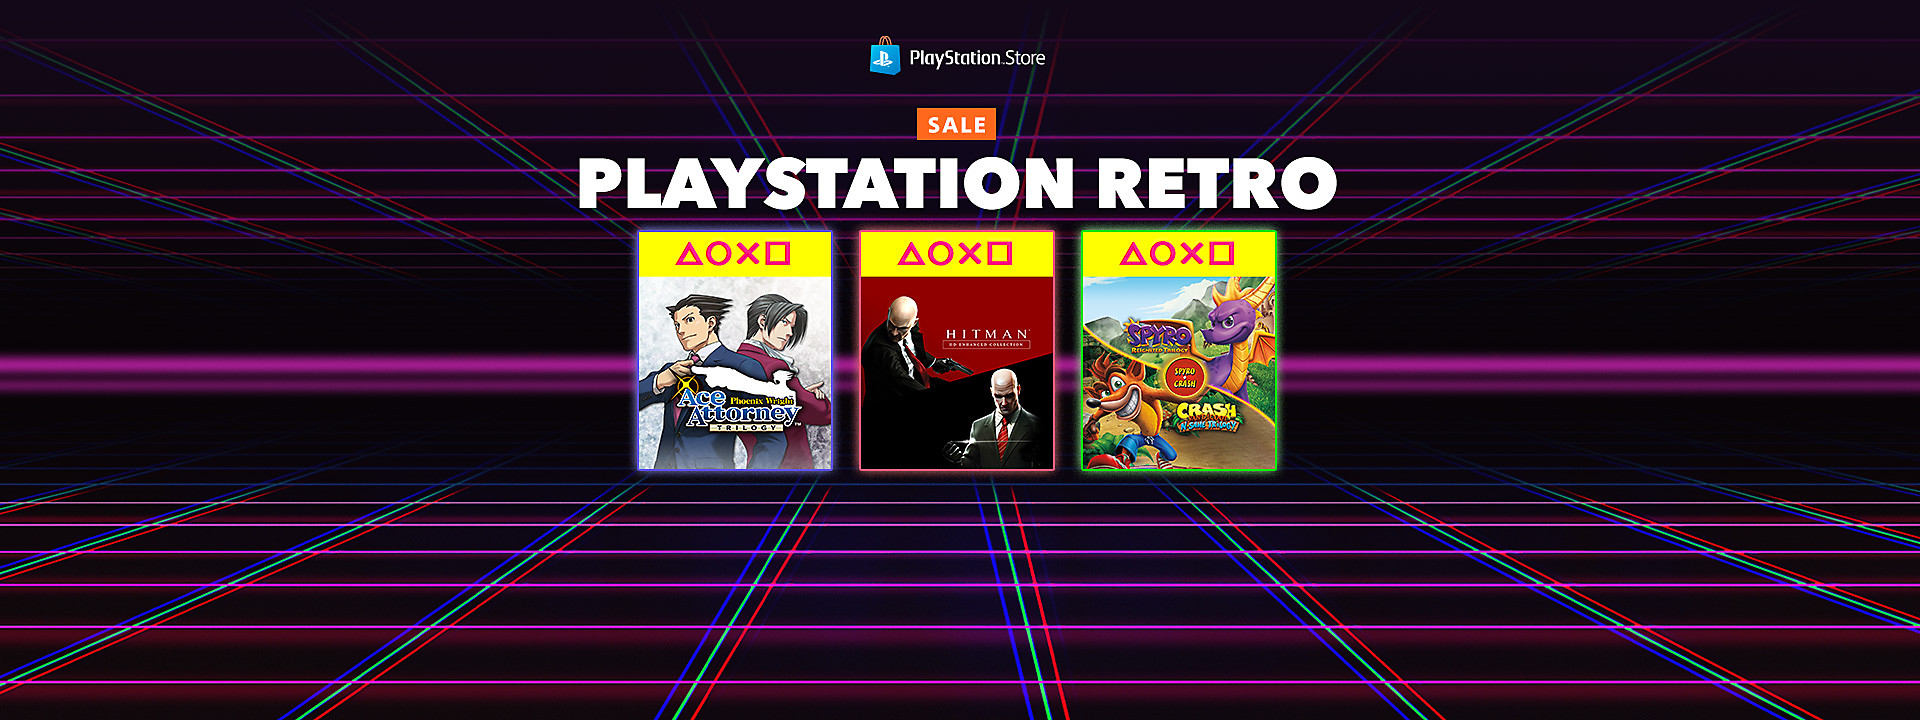 PlayStation Store Retro Sale - July 9 -23